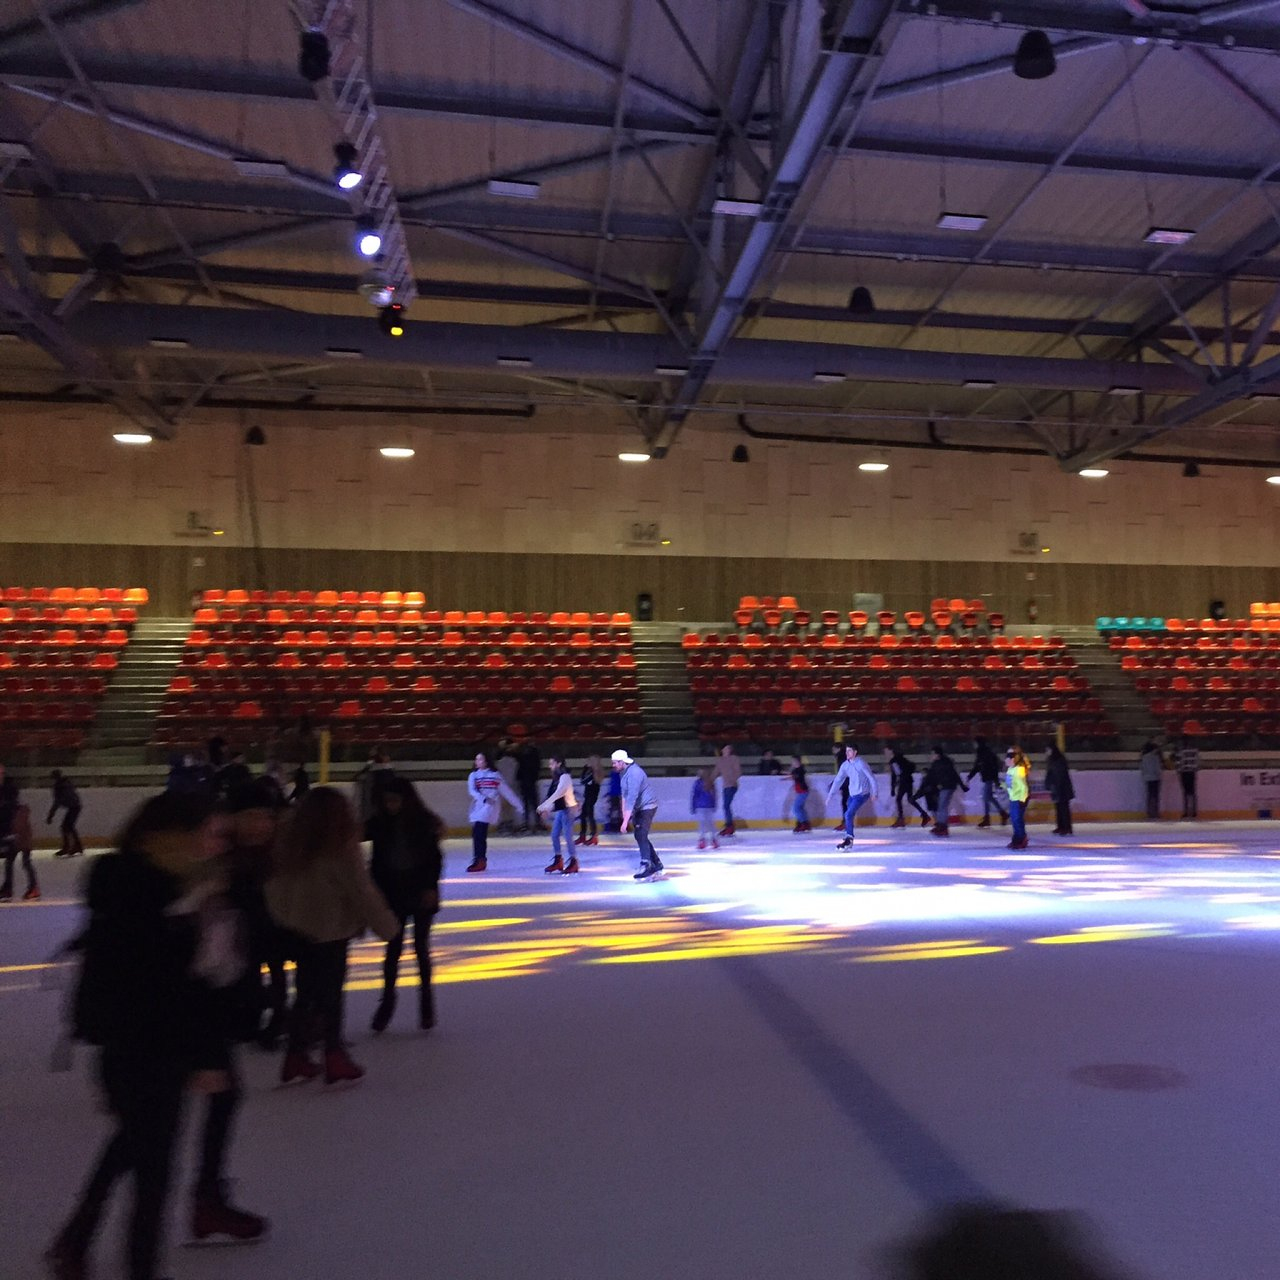 Patinoire De Dunkerque (Dunkirk) - 2020 All You Need To Know ... destiné Piscine Mardyck